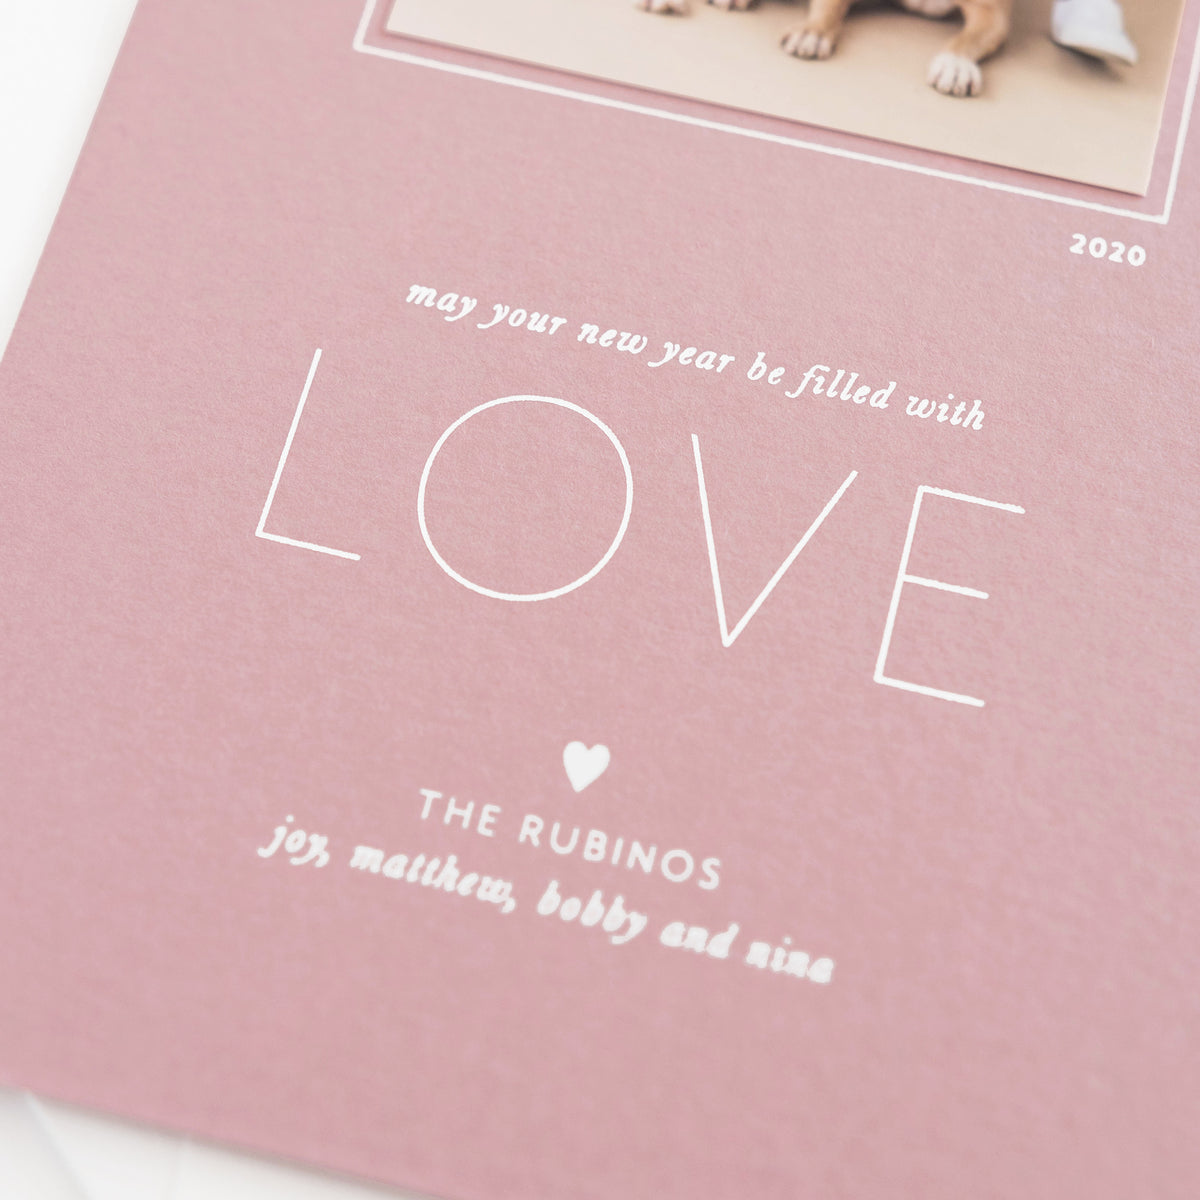 Closeup of dusty rose holiday card showing white foil text